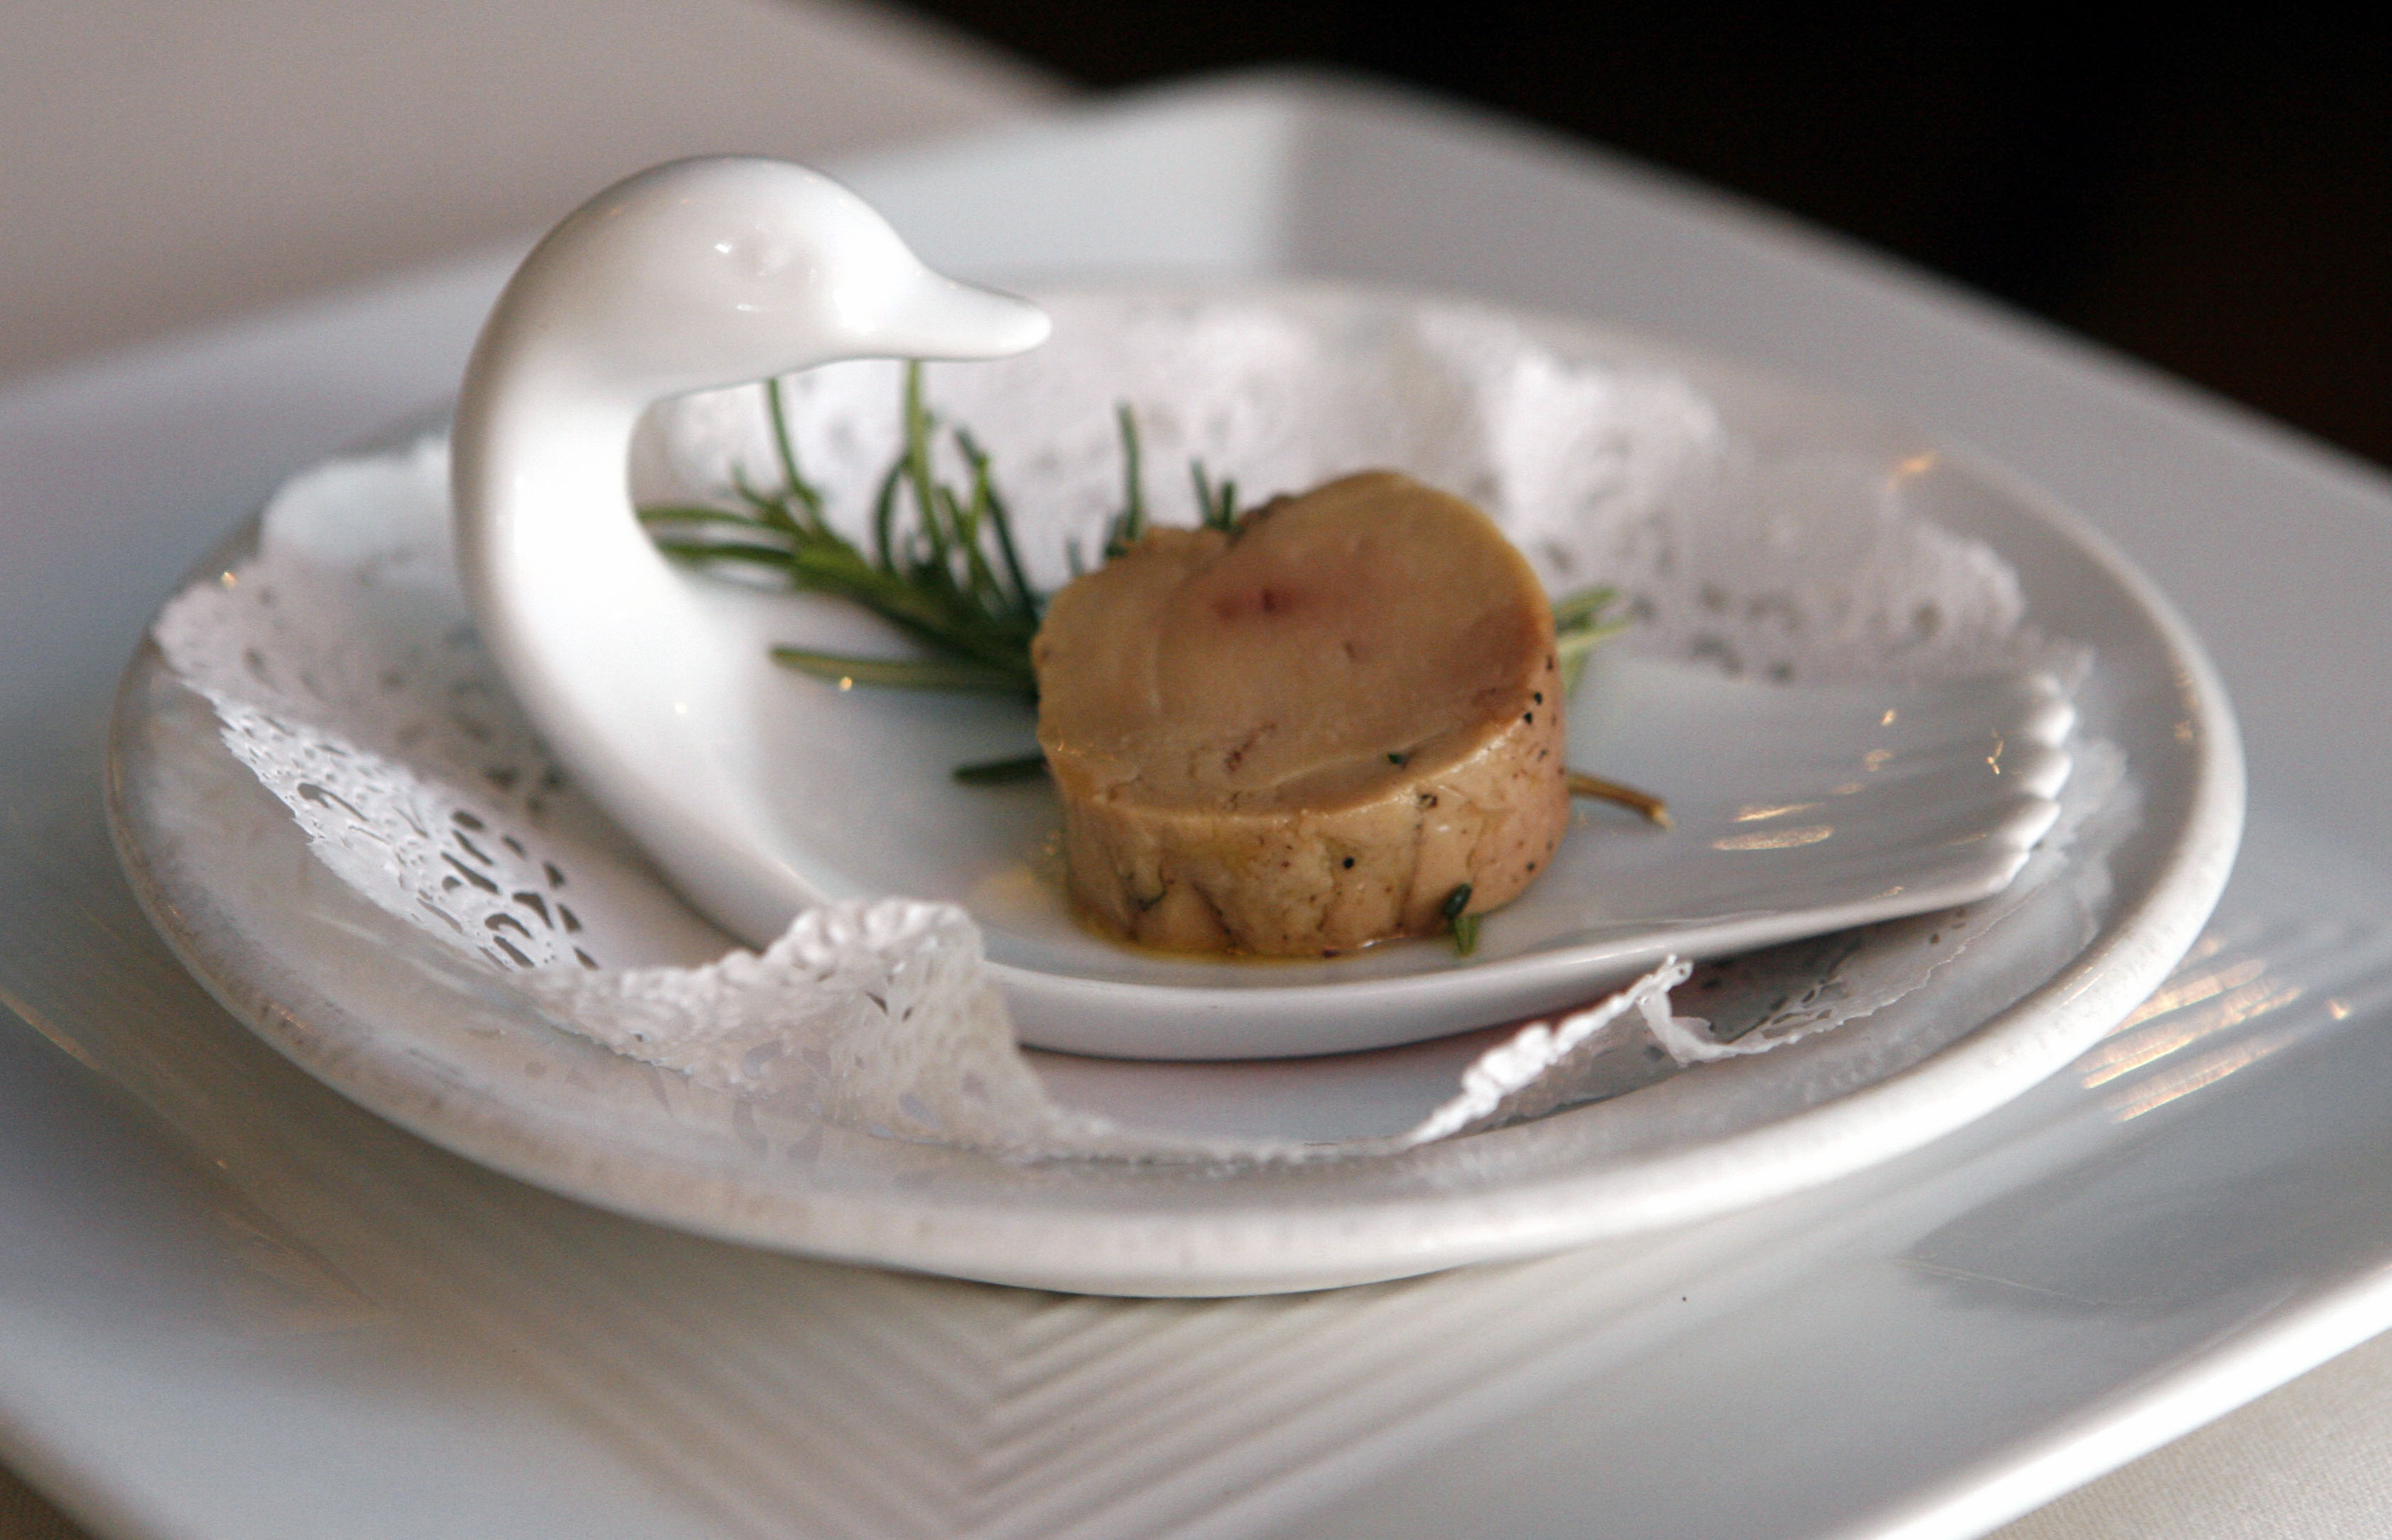 In this Aug. 9, 2006 file photo, a serving of salt-cured fresh foie gras with herbs is displayed at Chef Didier Durand's Cyrano's Bistrot and Wine Bar in Chicago.